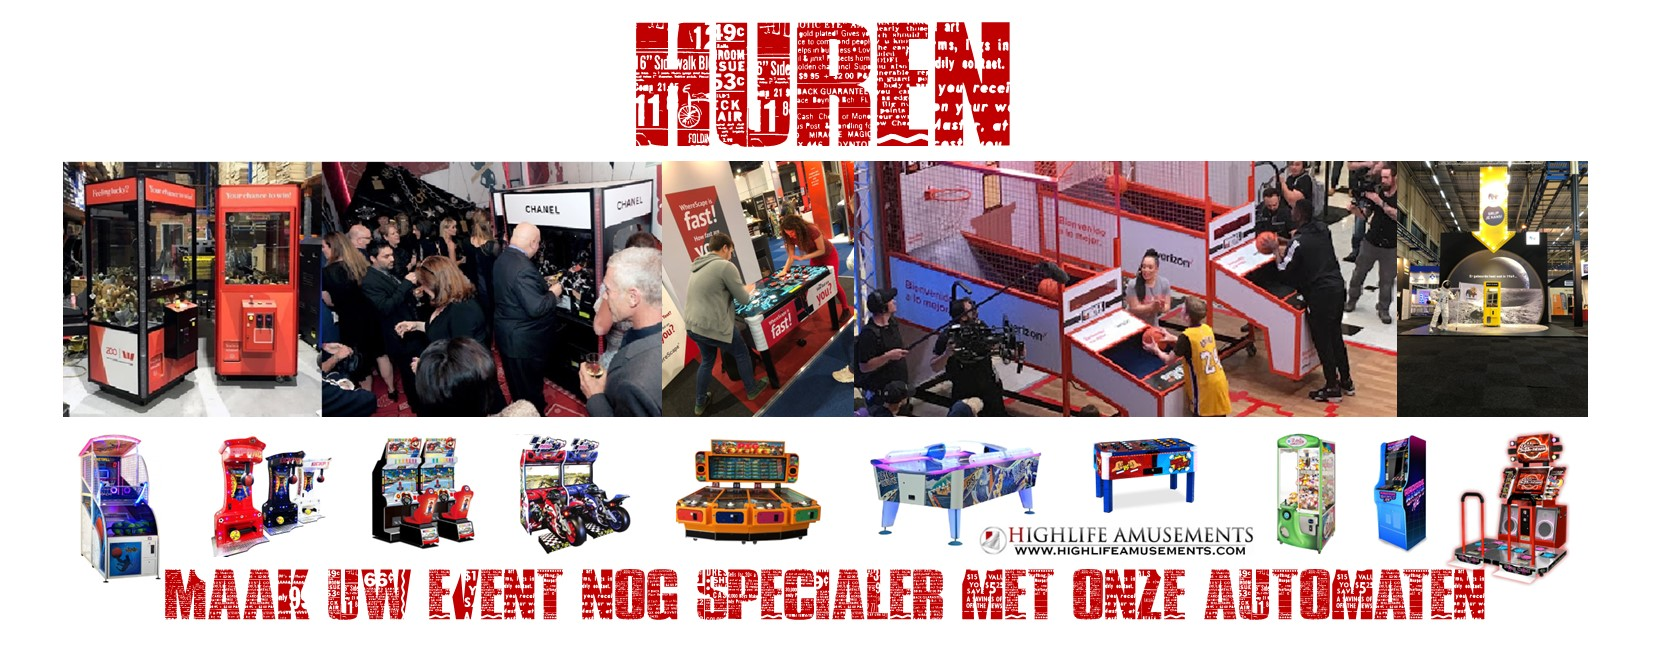 amusement games huren, spellen, arcade, kinderfeest, kidsparty, beurs, event, gamehall, pop up, airhockey, boksautomaat, boks,machine, basketbal, airhockey, grijpautomaat, dance, game, machine, race simulator, opening, winkel, bedrijf, personaliseren, customizing